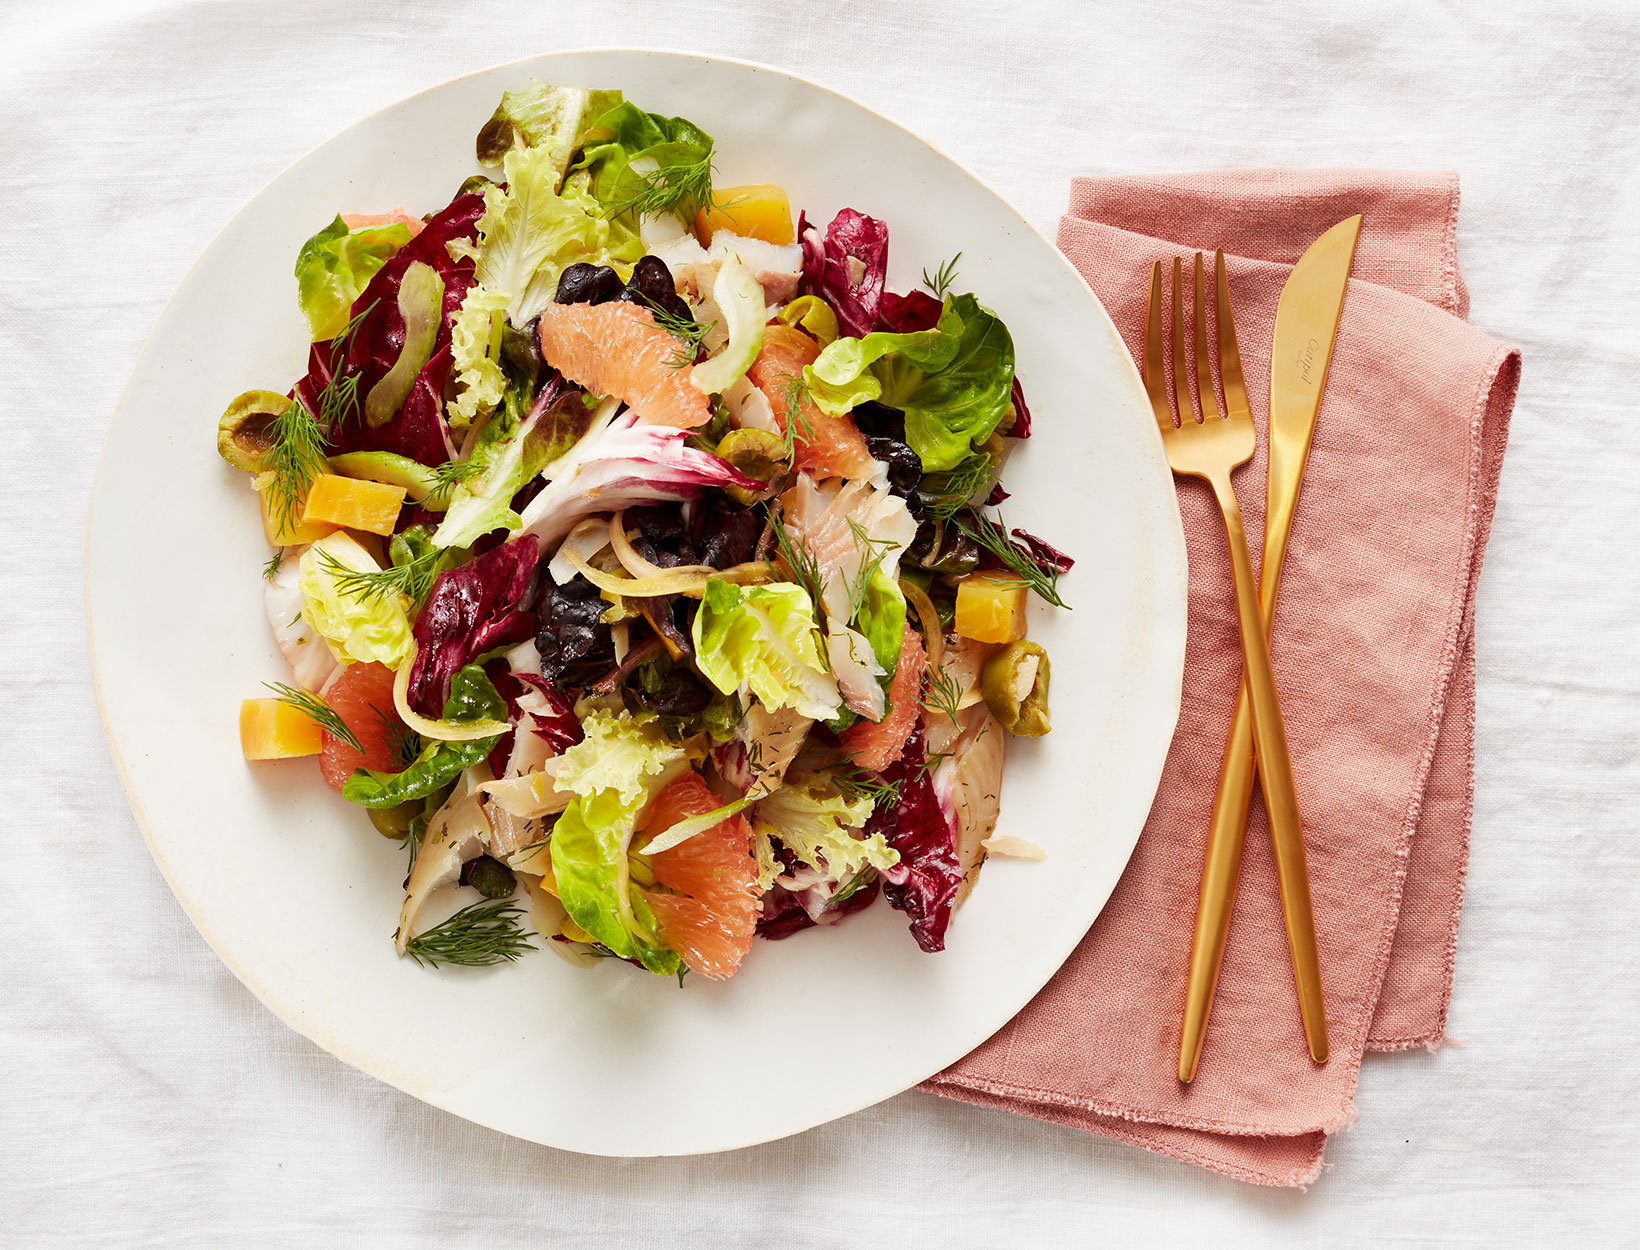 Smoked Trout Salad with Grapefruit and Beets